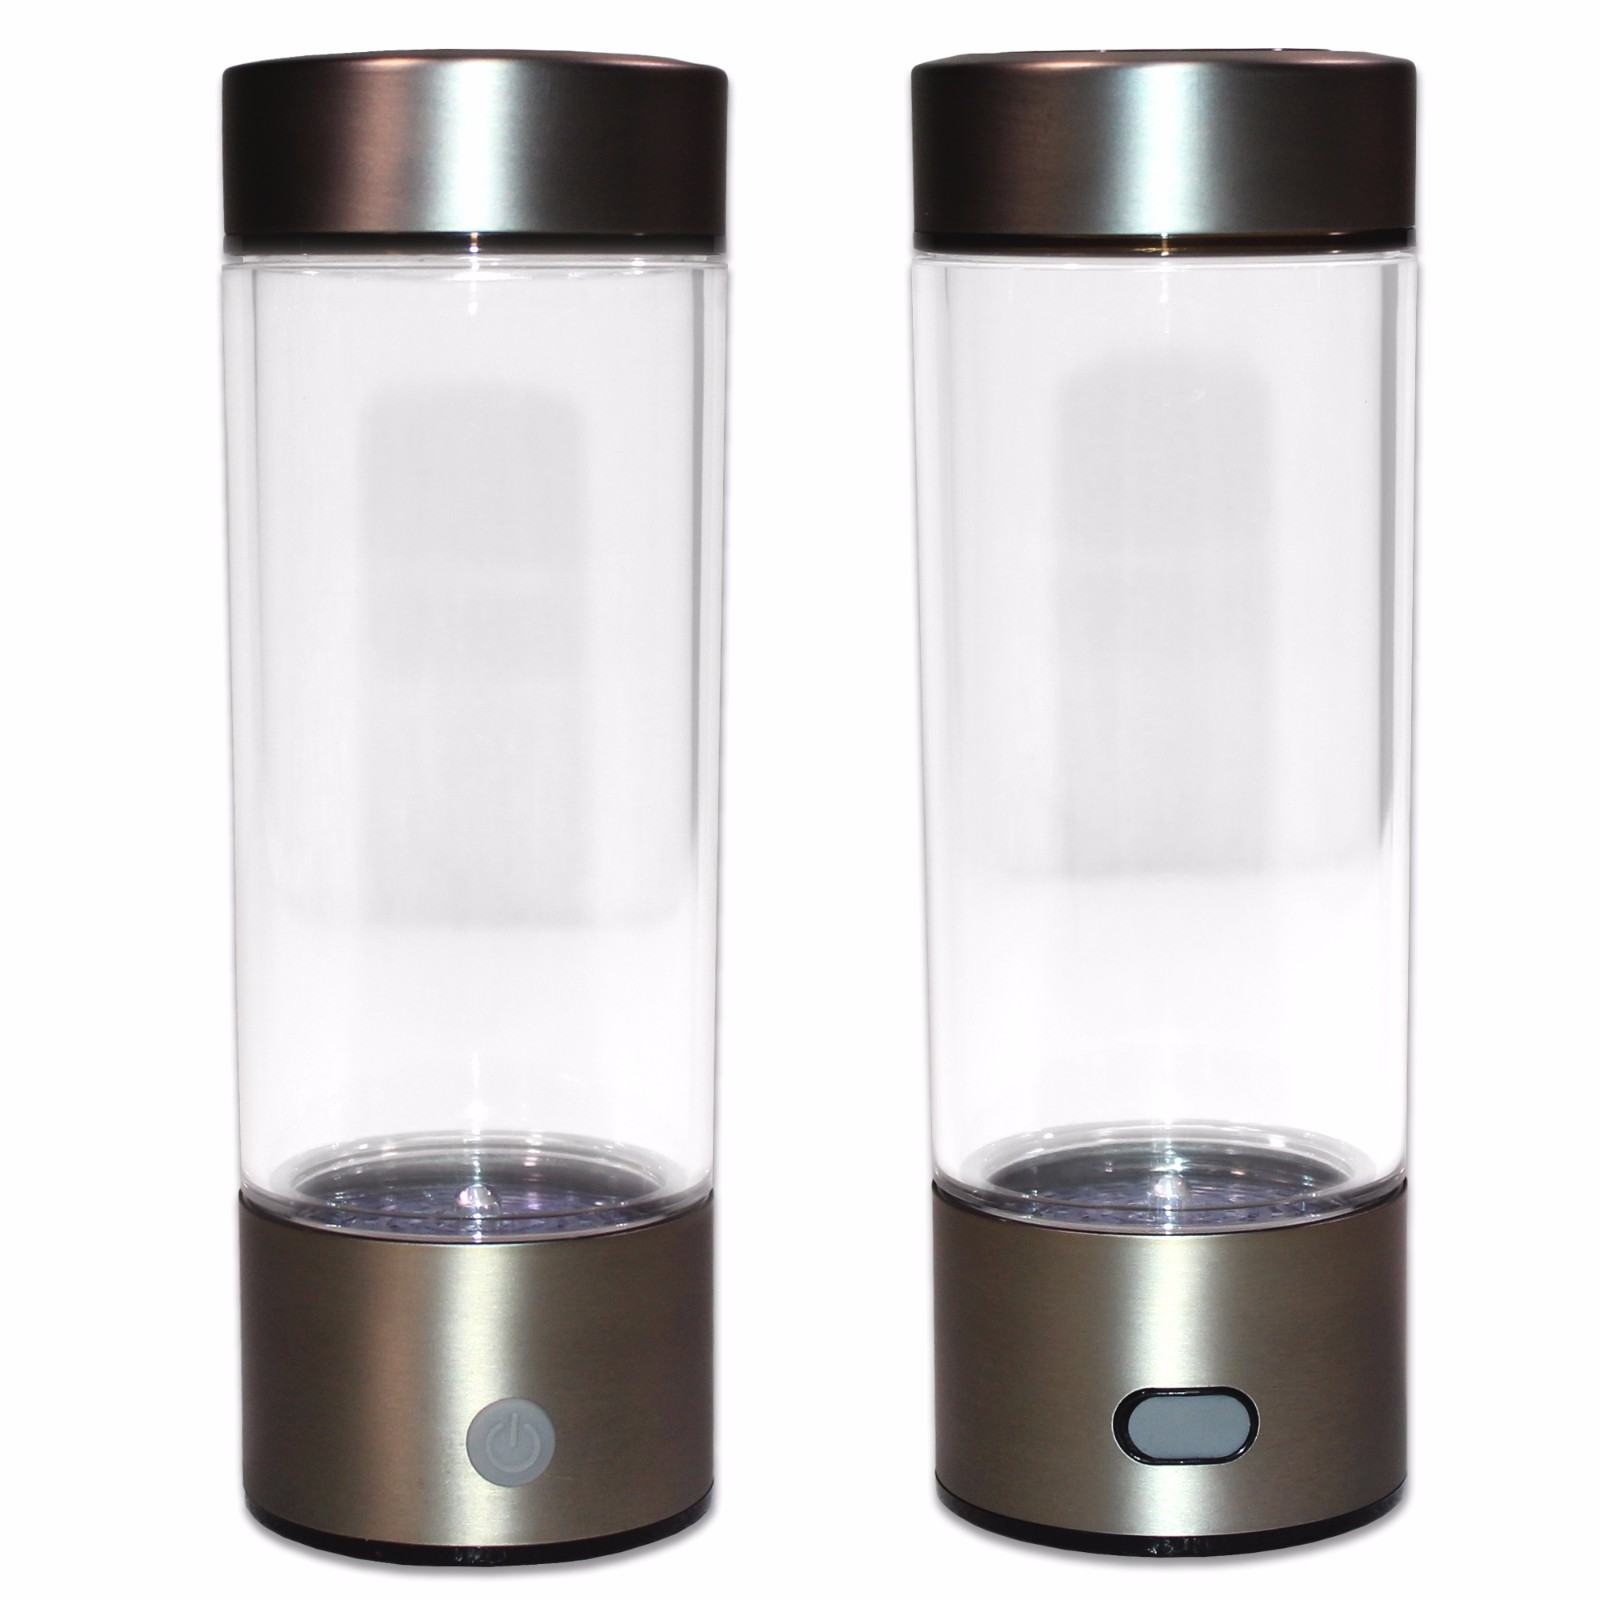 Portable Hydrogen Transparent Water Bottle Cup Recharge Hydrogen Rich Water Ionizer Maker Generator 450mL Capacity Battery Light Healthy Water Purifier Filter Treatment